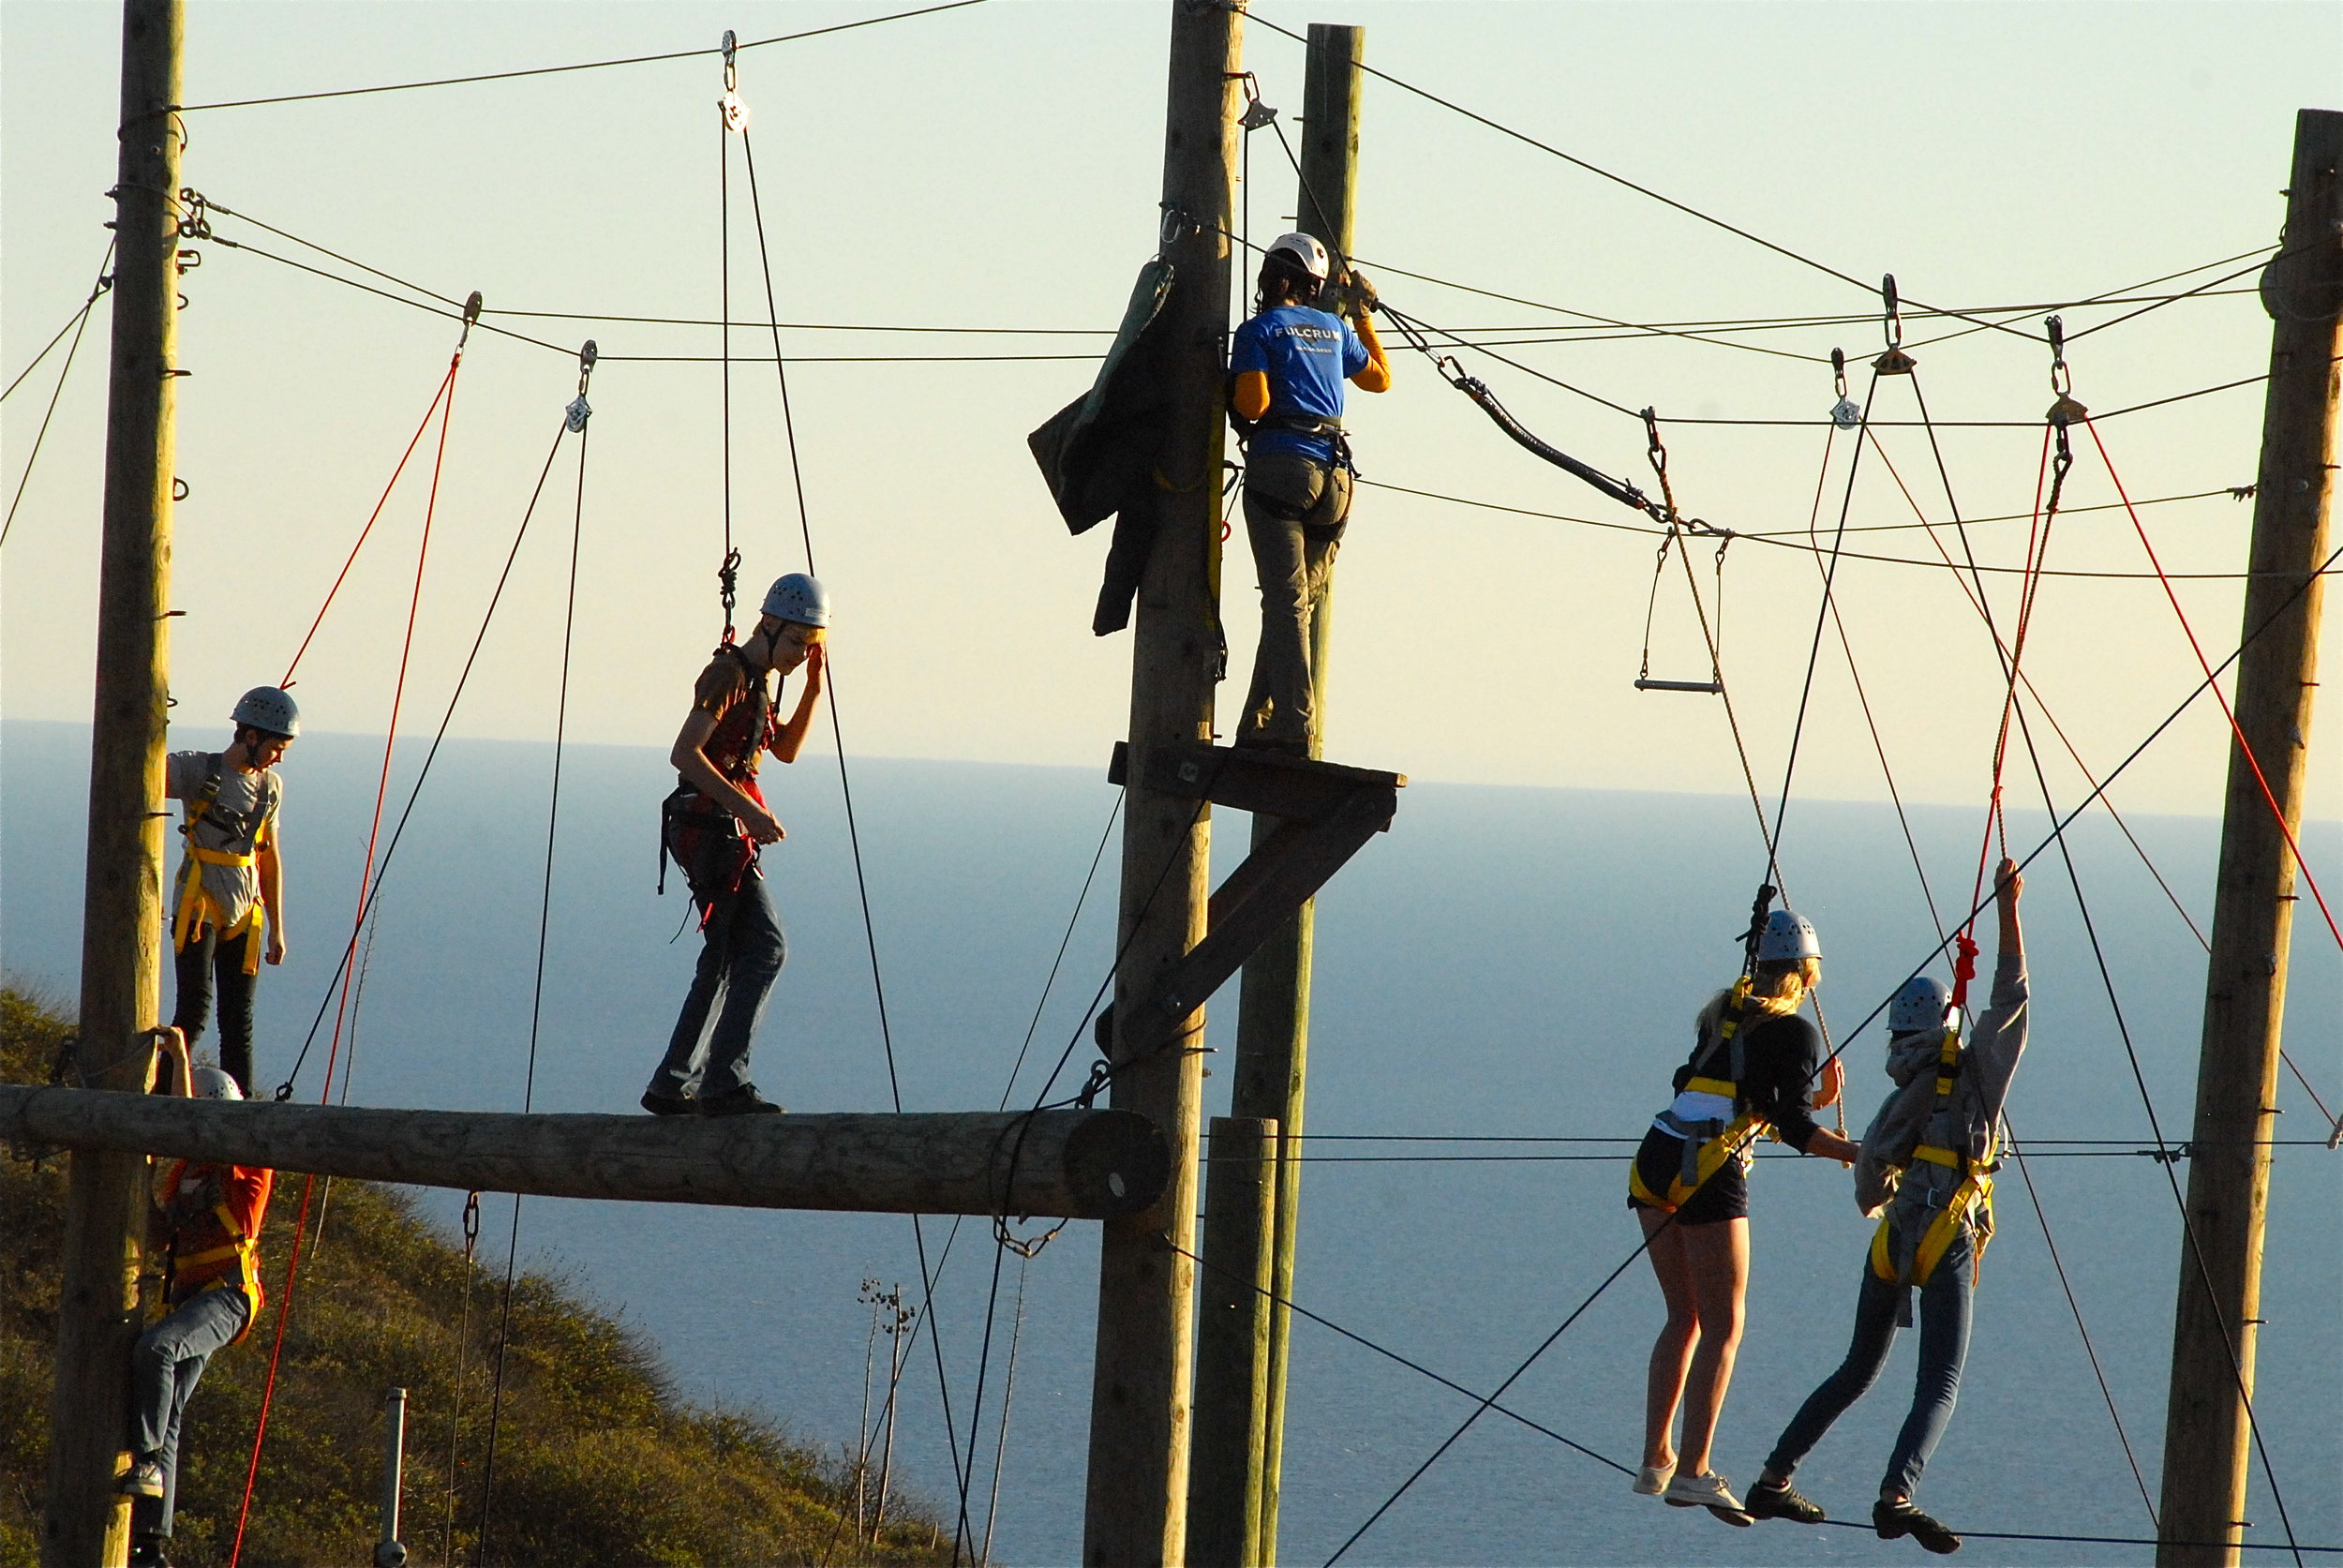 High Challenge Ropes Course Ginding Hilltop.JPG